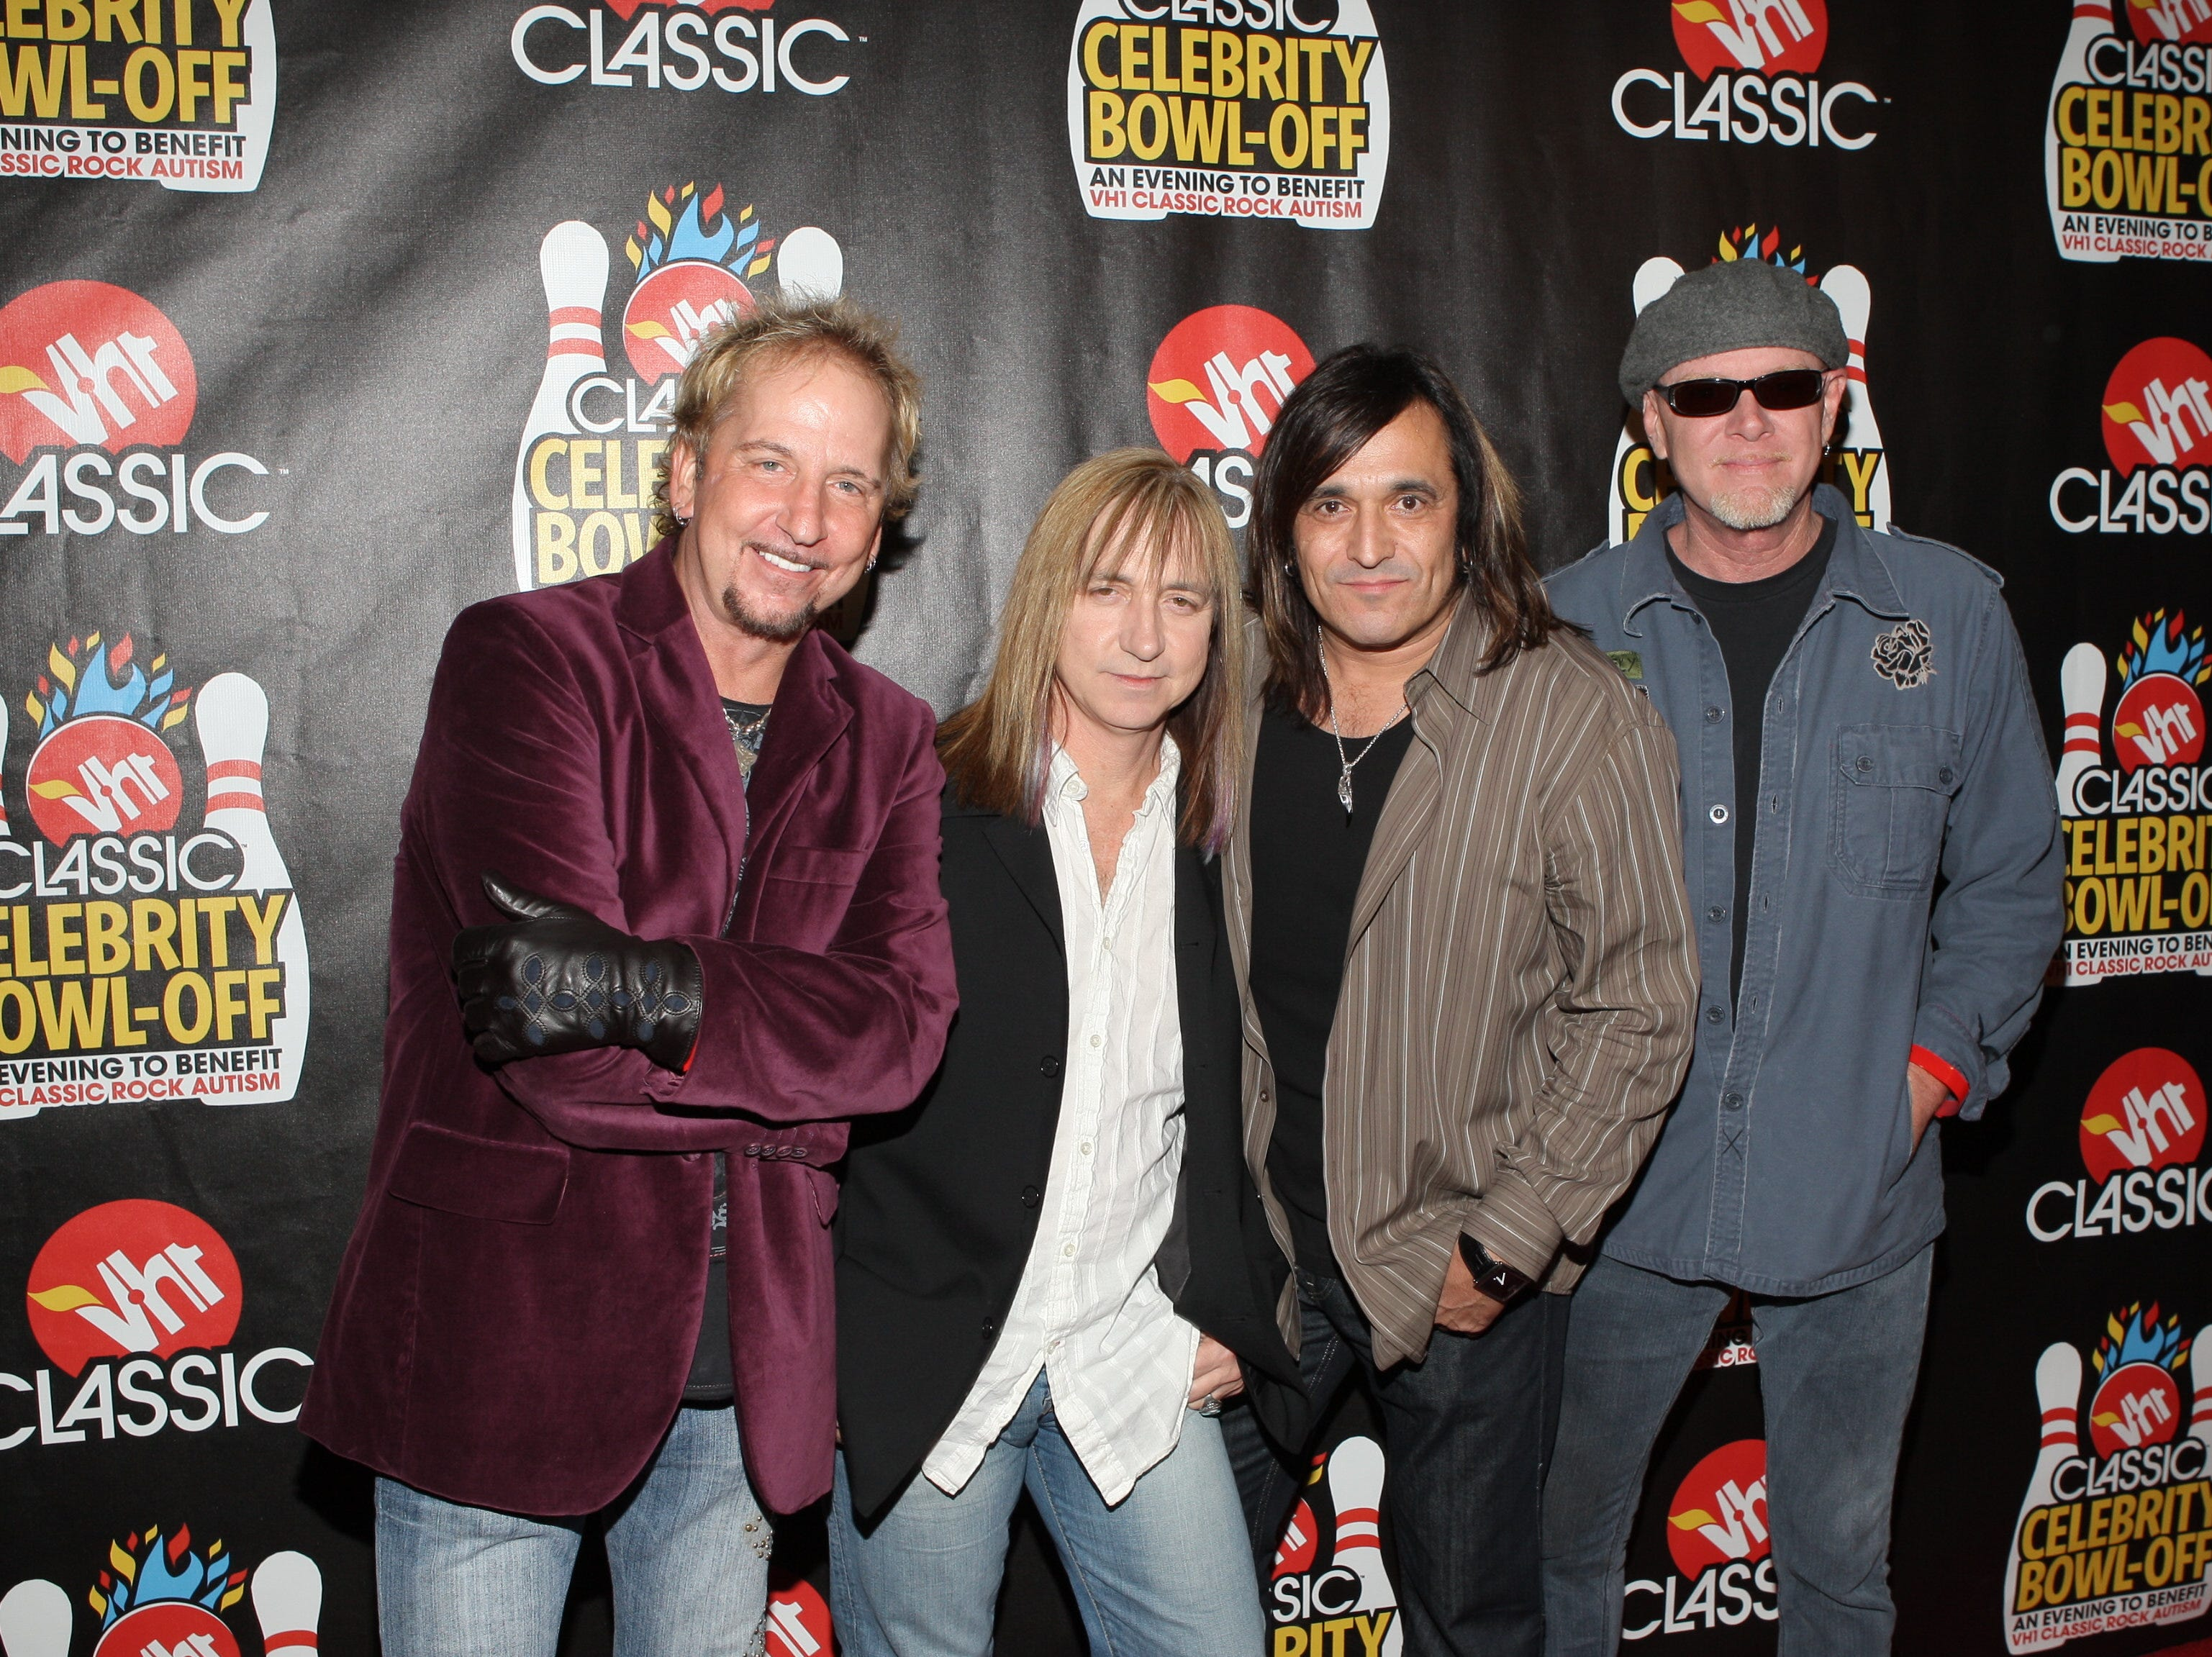 Members from the band Great White pose during the VH-1 Classic Rock Autism Celebration held on Thursday November 13th, 2008 in Hollywood, California.  (AP Photo/Mark Davis)